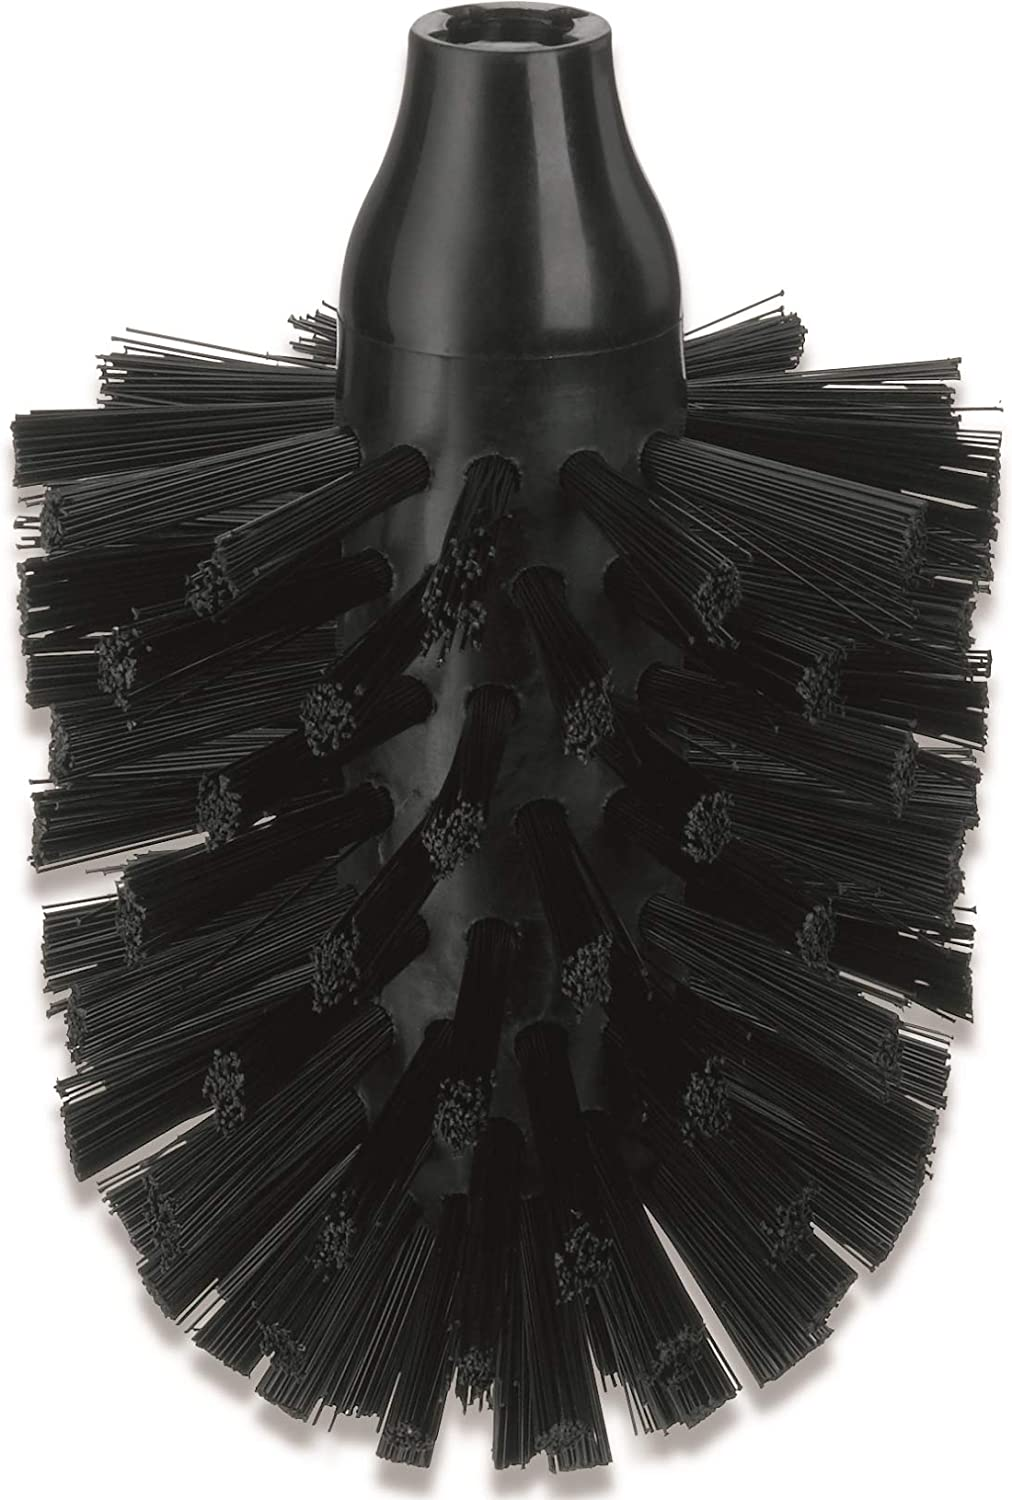 Black Kela Replacement Toilet Brush Head La Brosse Collection